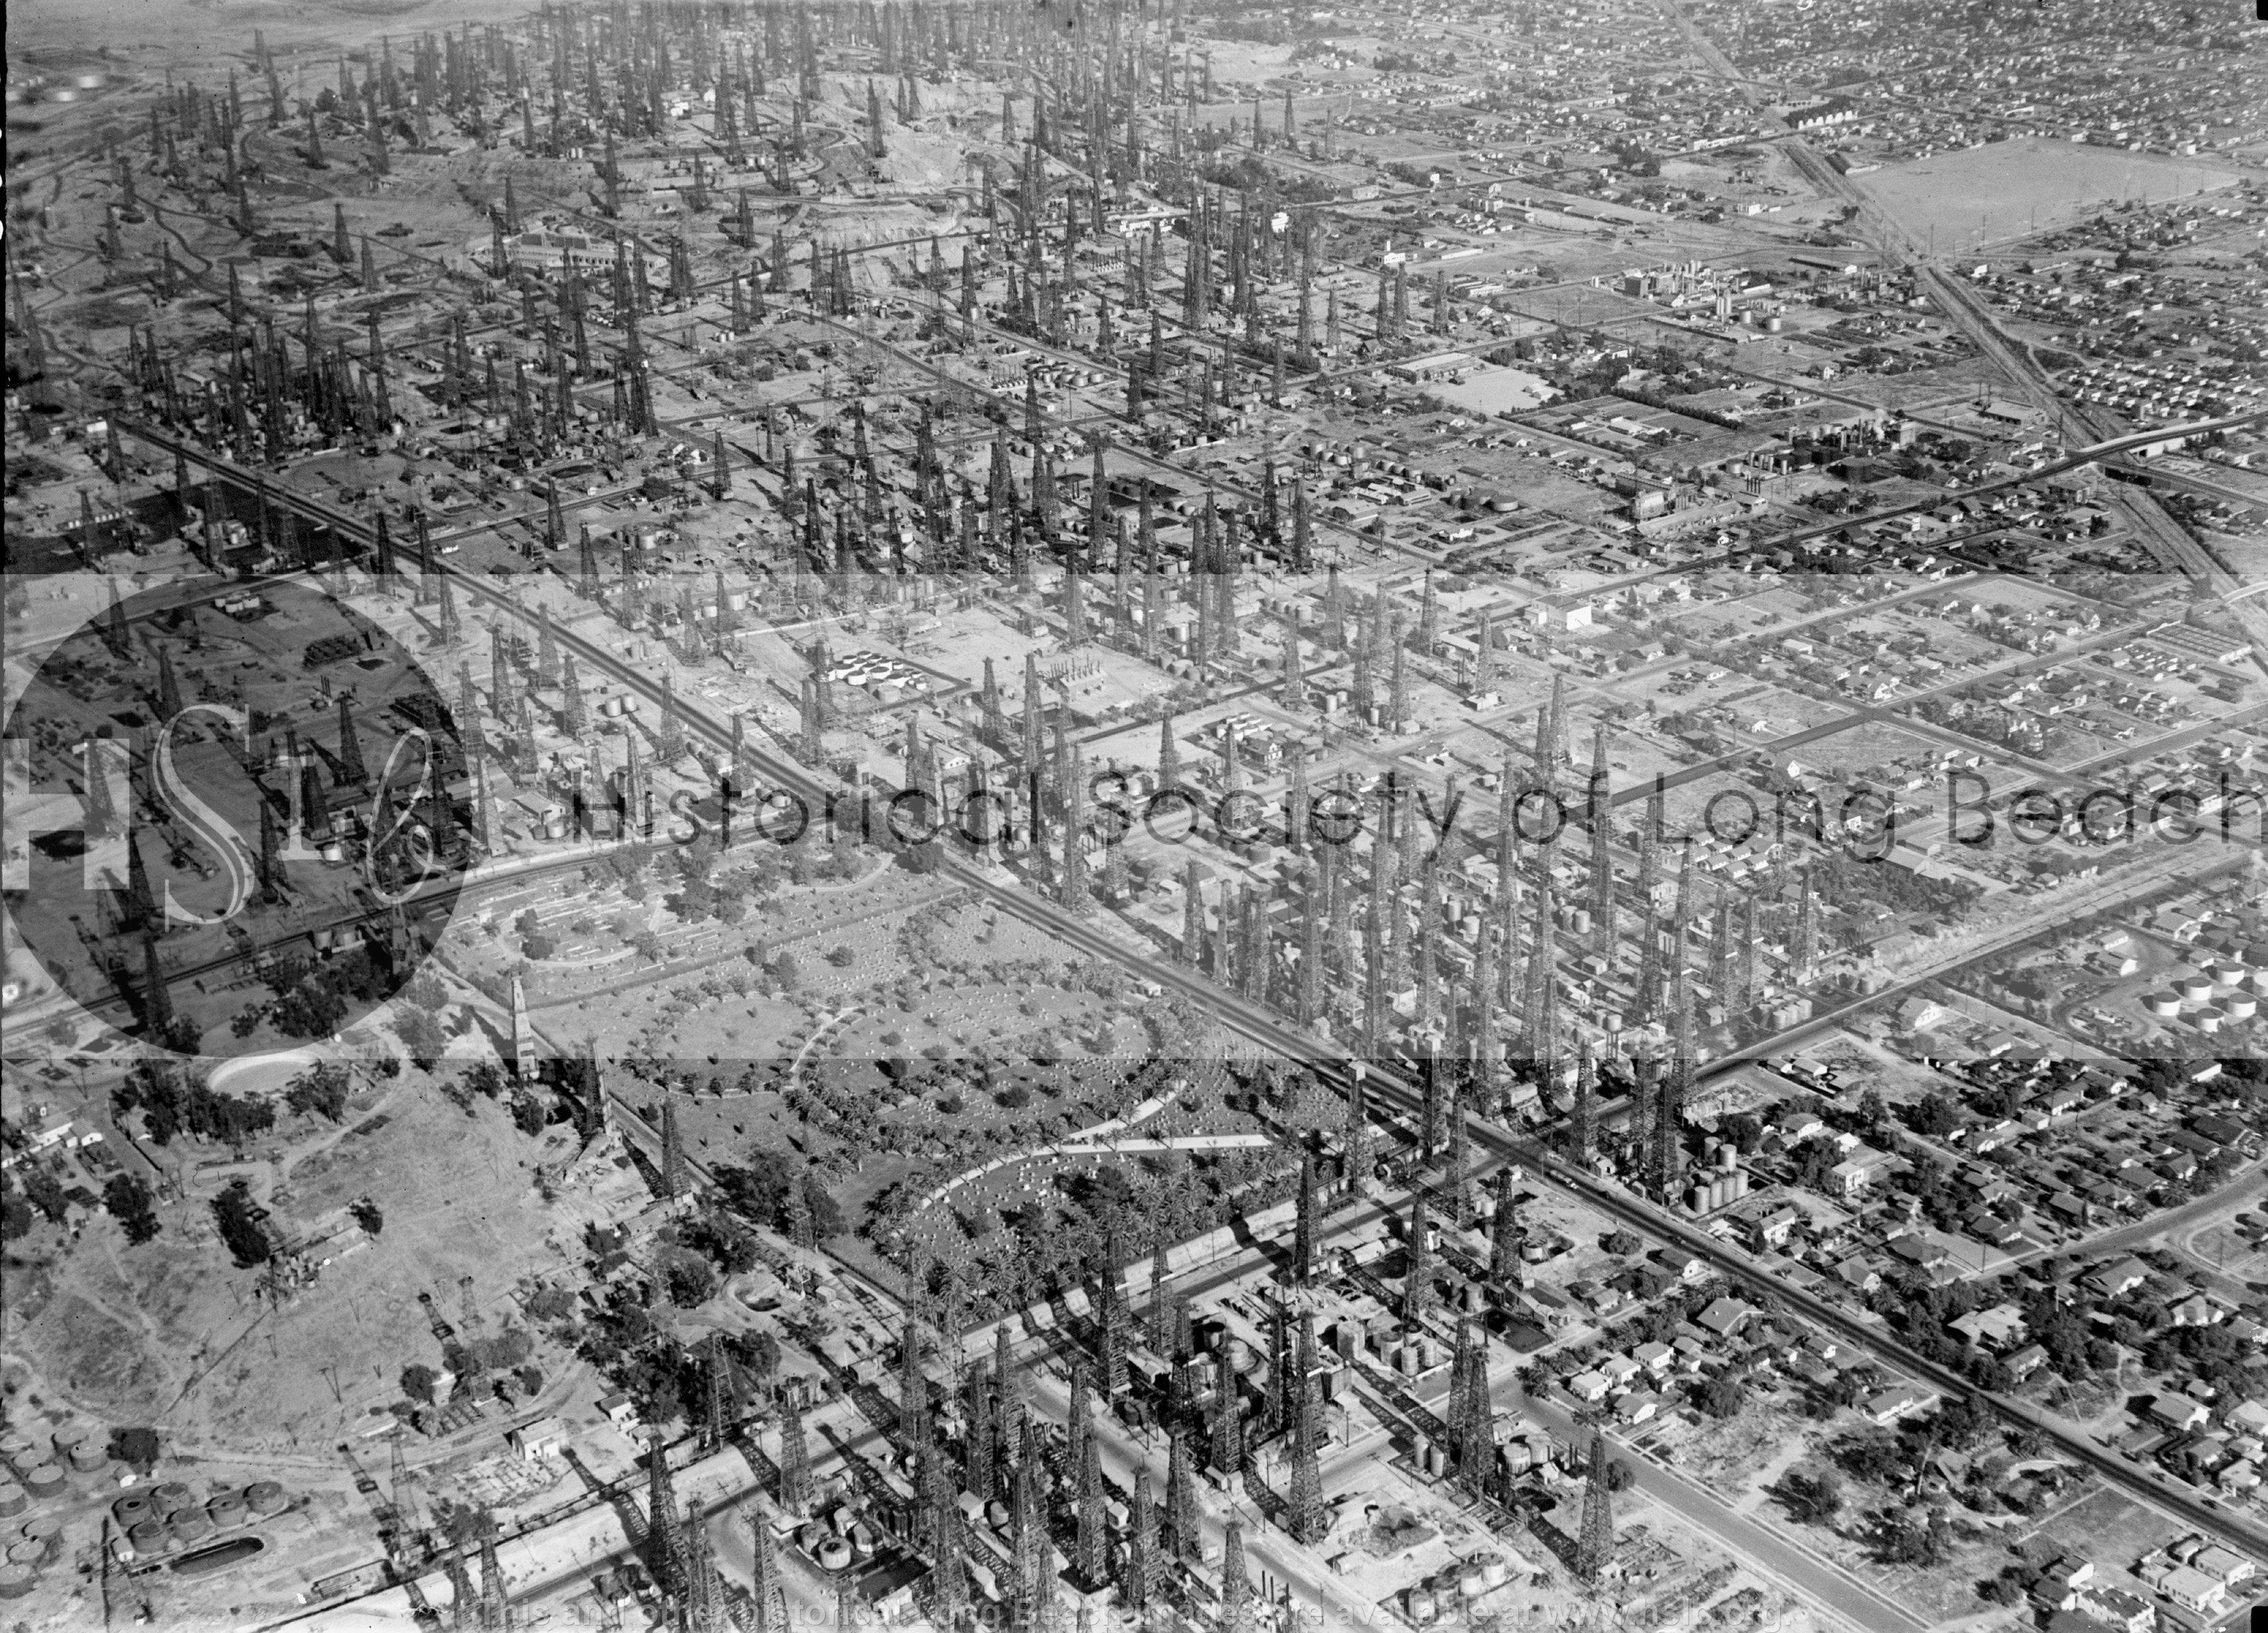 Long Beach cemeteries, 1936 historical photograph